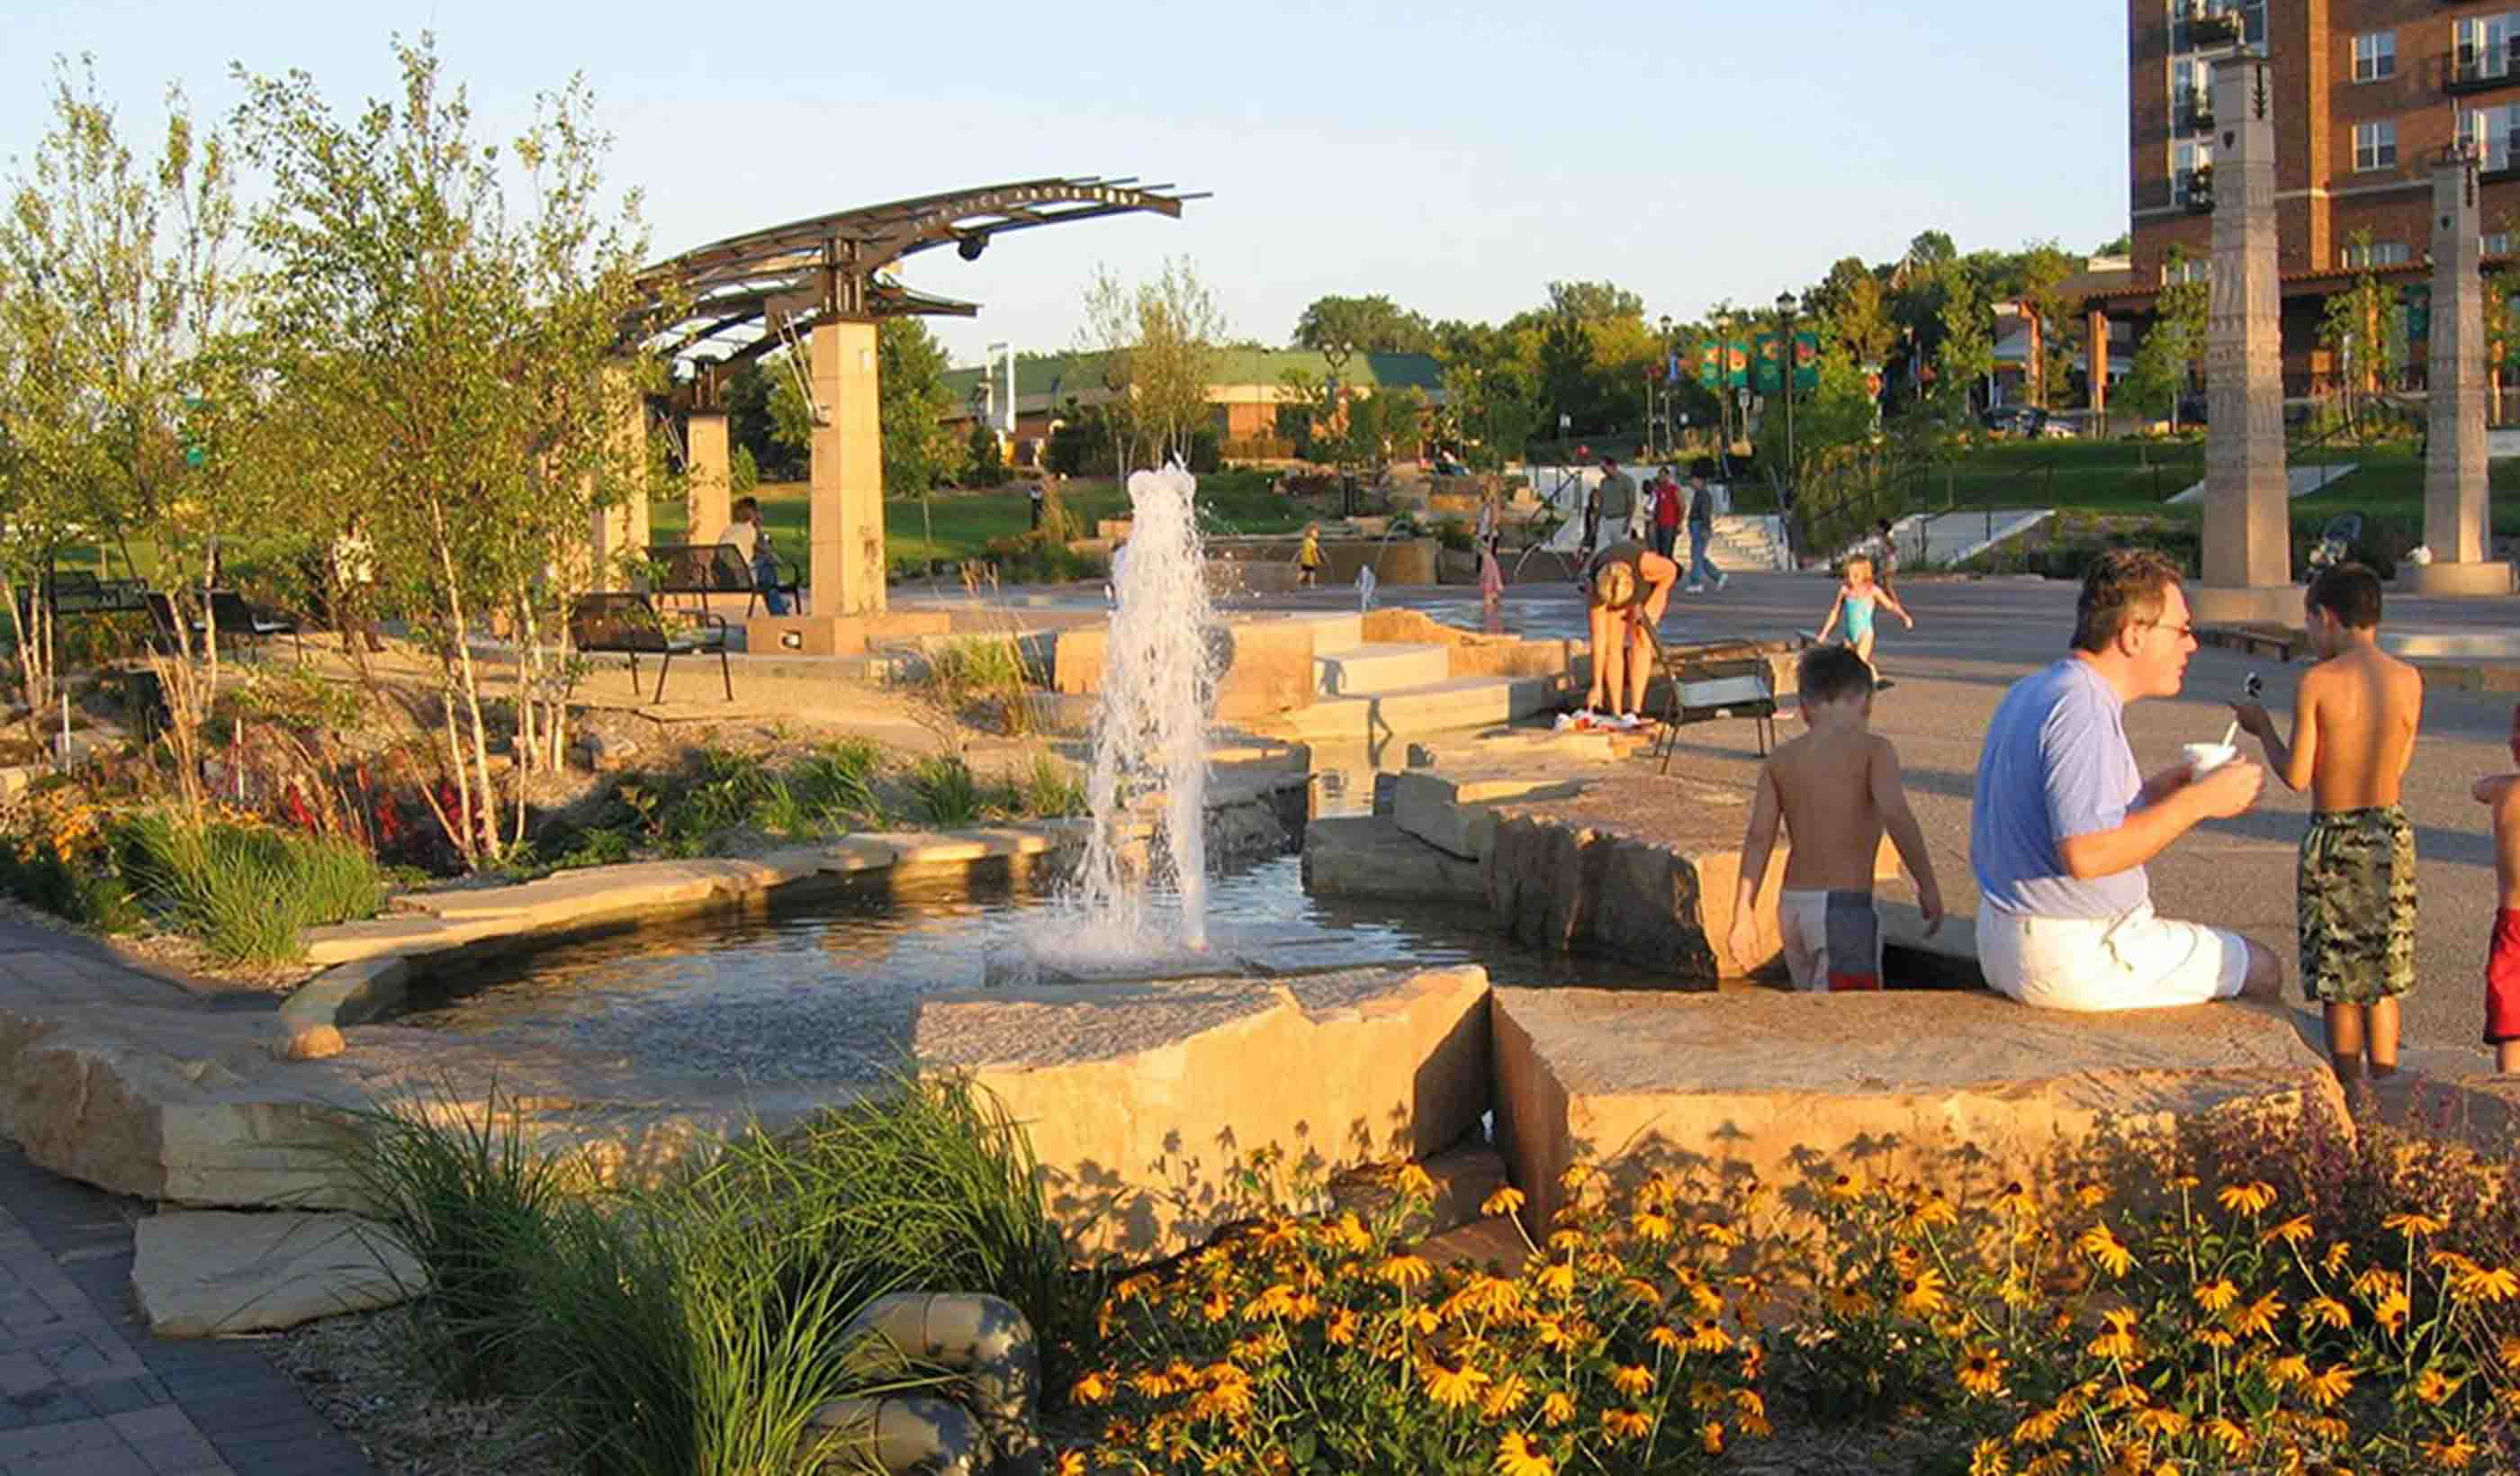 Open park area with water feature and seating areas